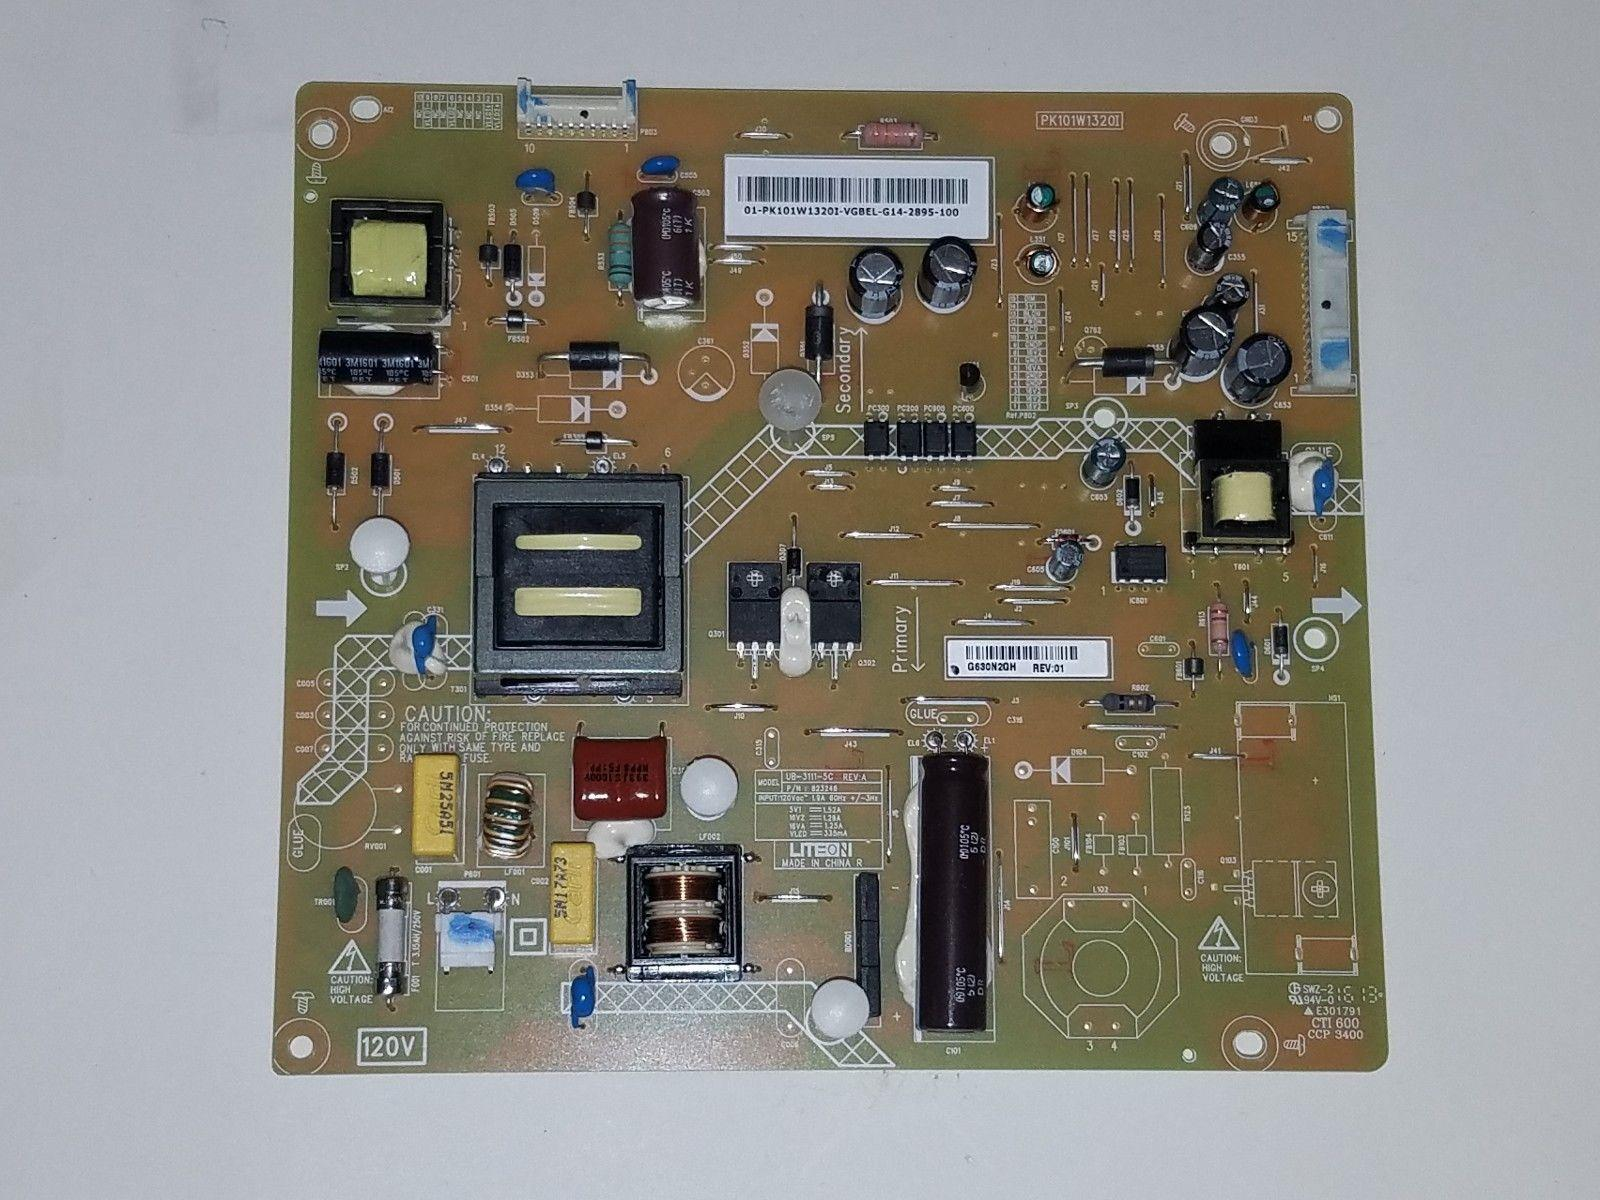 Toshiba 43L420U Power Supply PK101W1320I